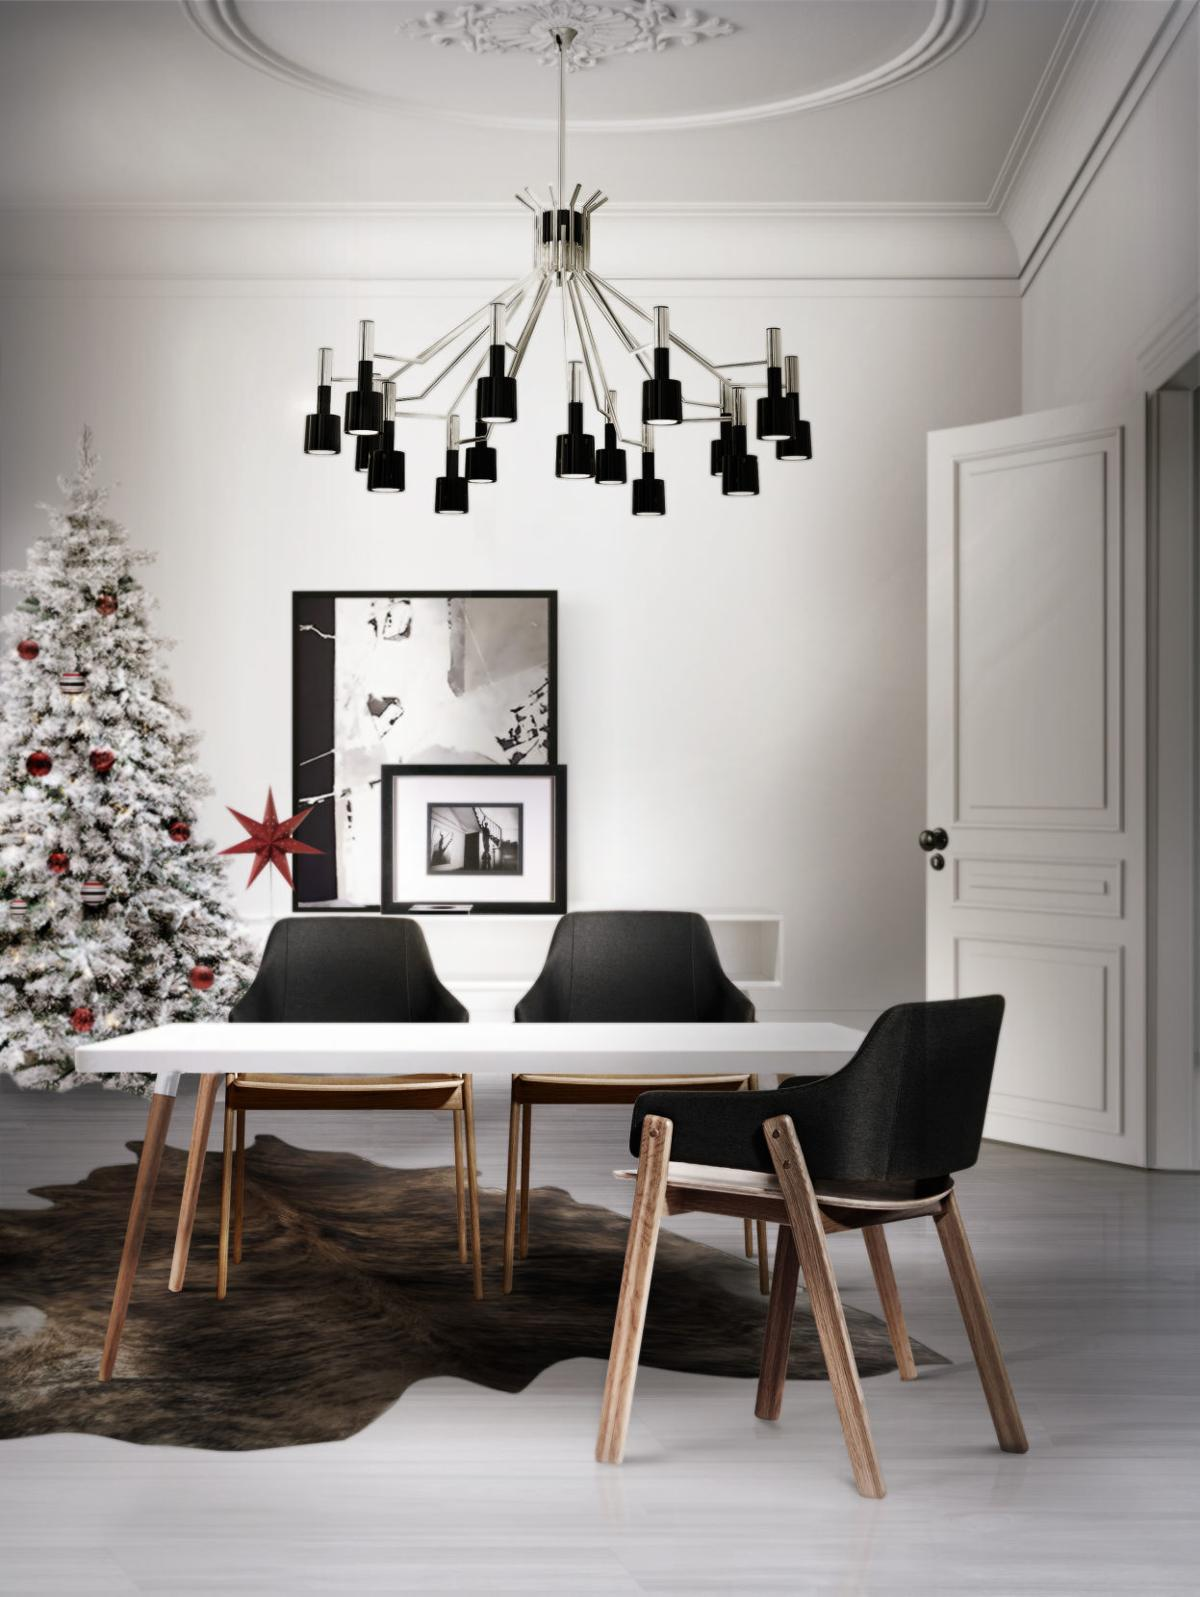 The modern dining room | Lifestyles | wcfcourier.com